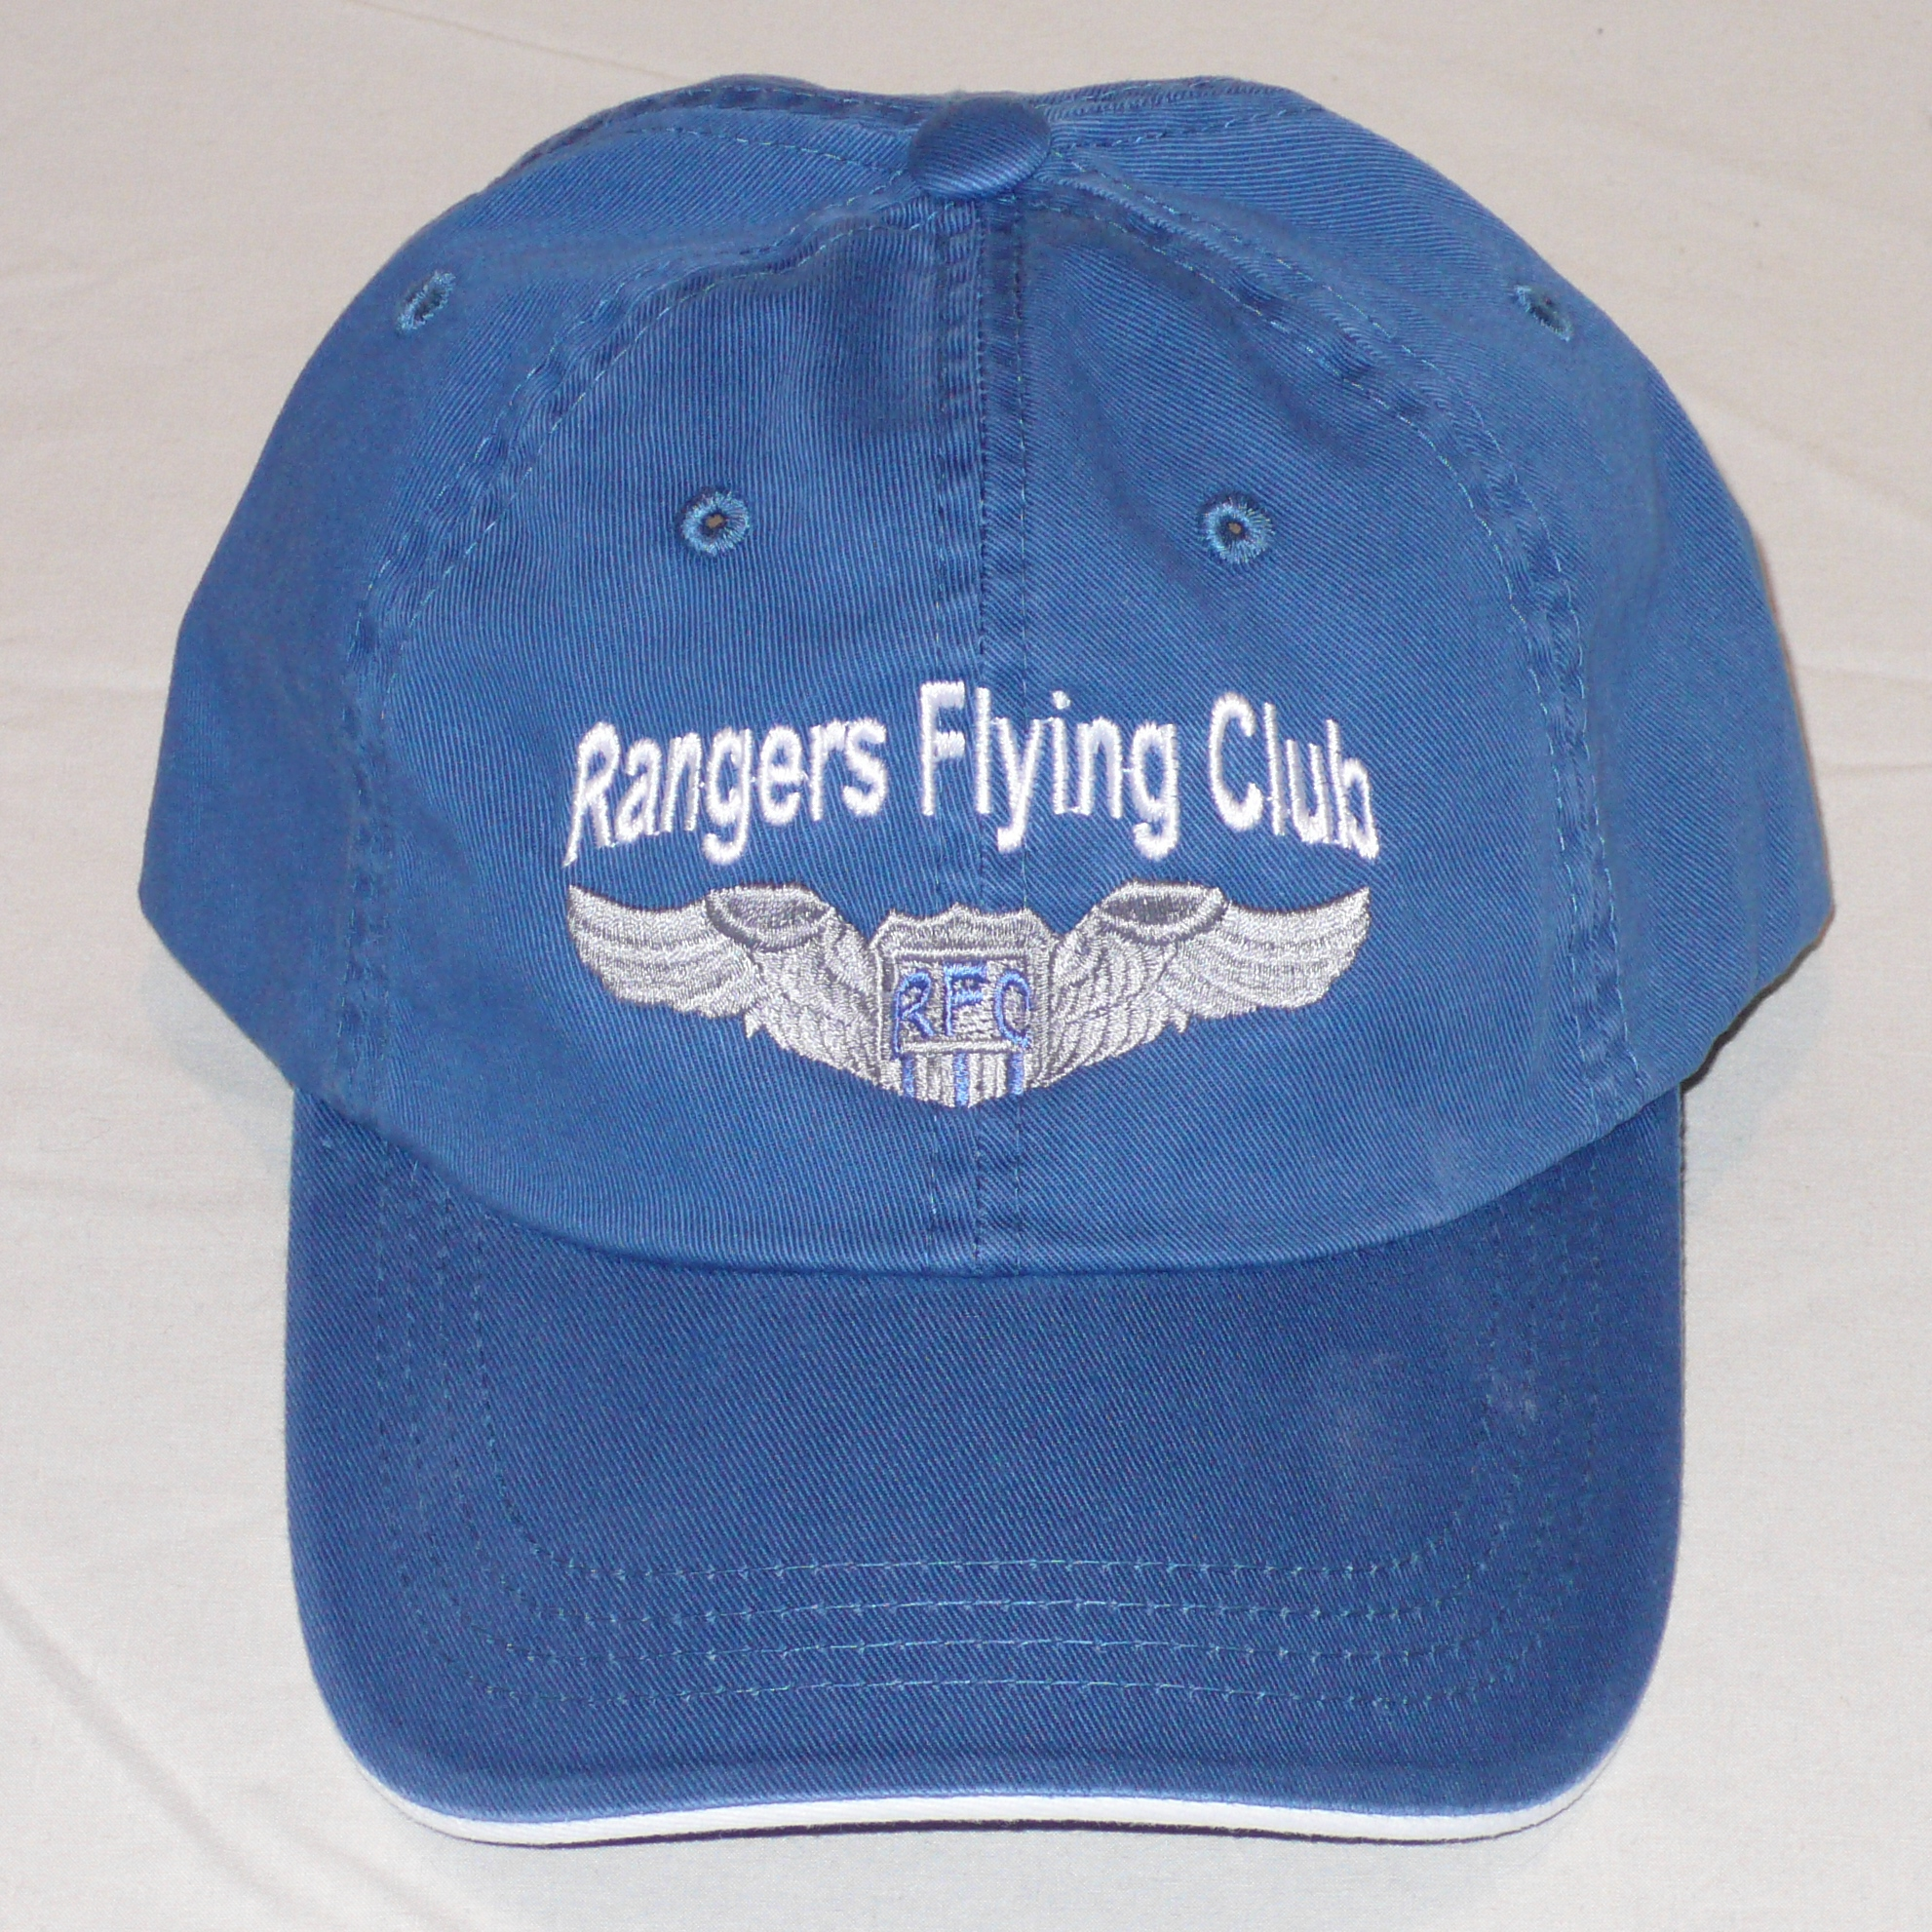 Rangers Flying Club Signature Cap